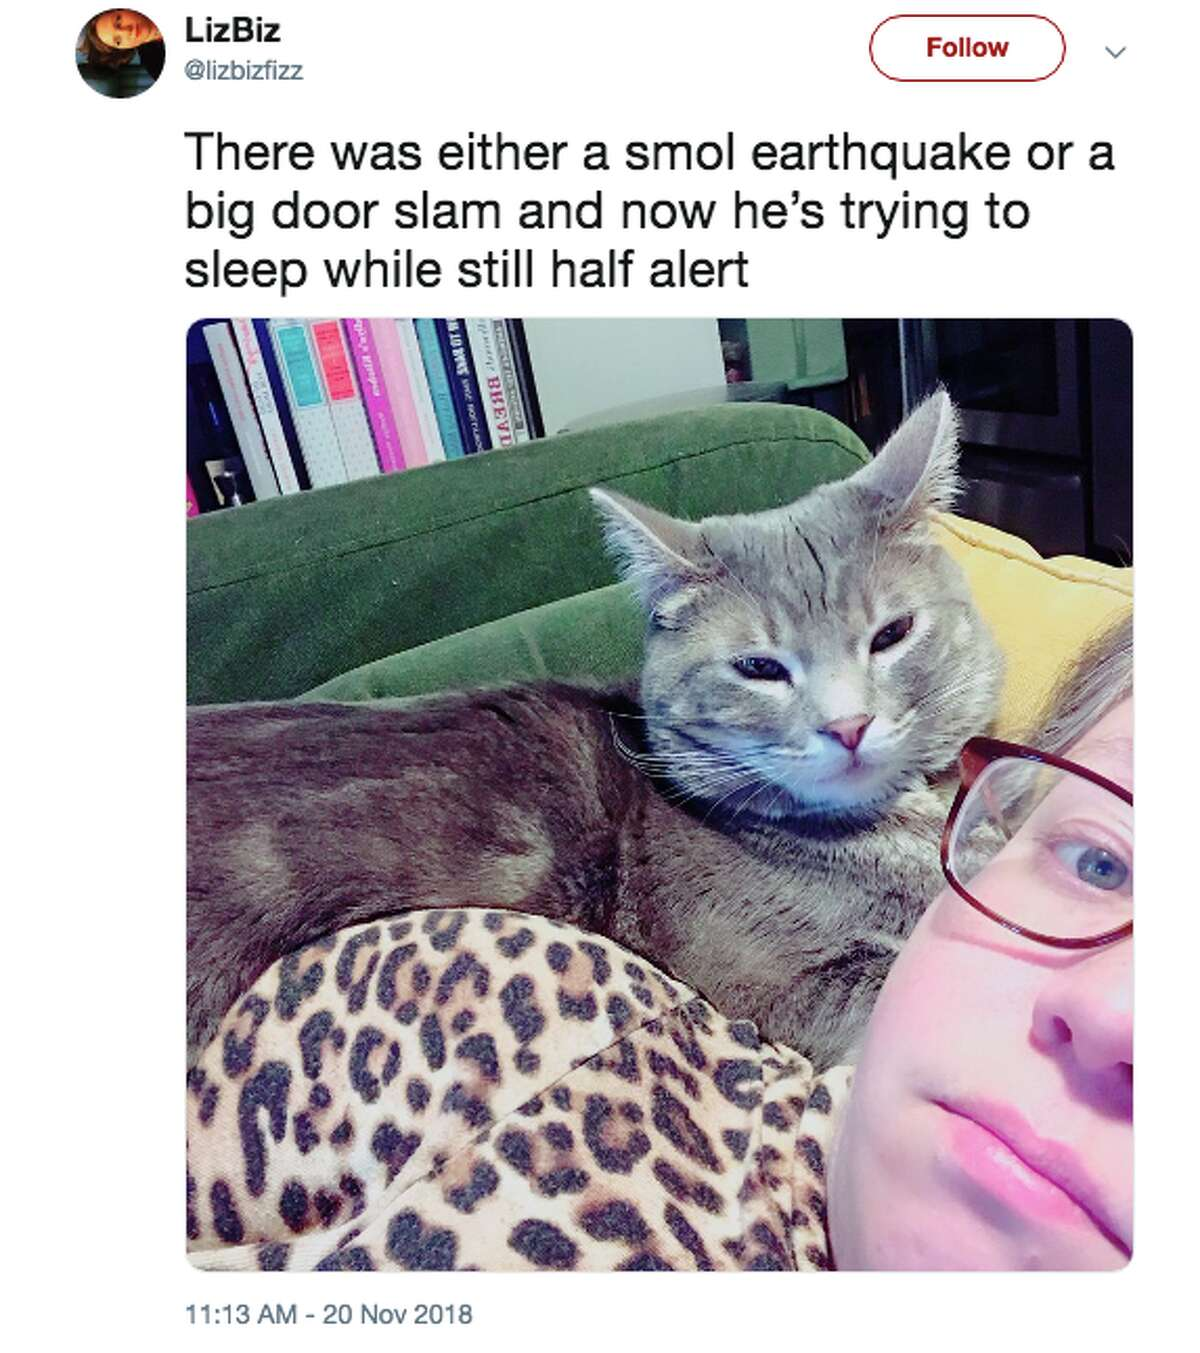 Even a small earthquake was enough to wake up #EarthquakeTwitter in Oakland.